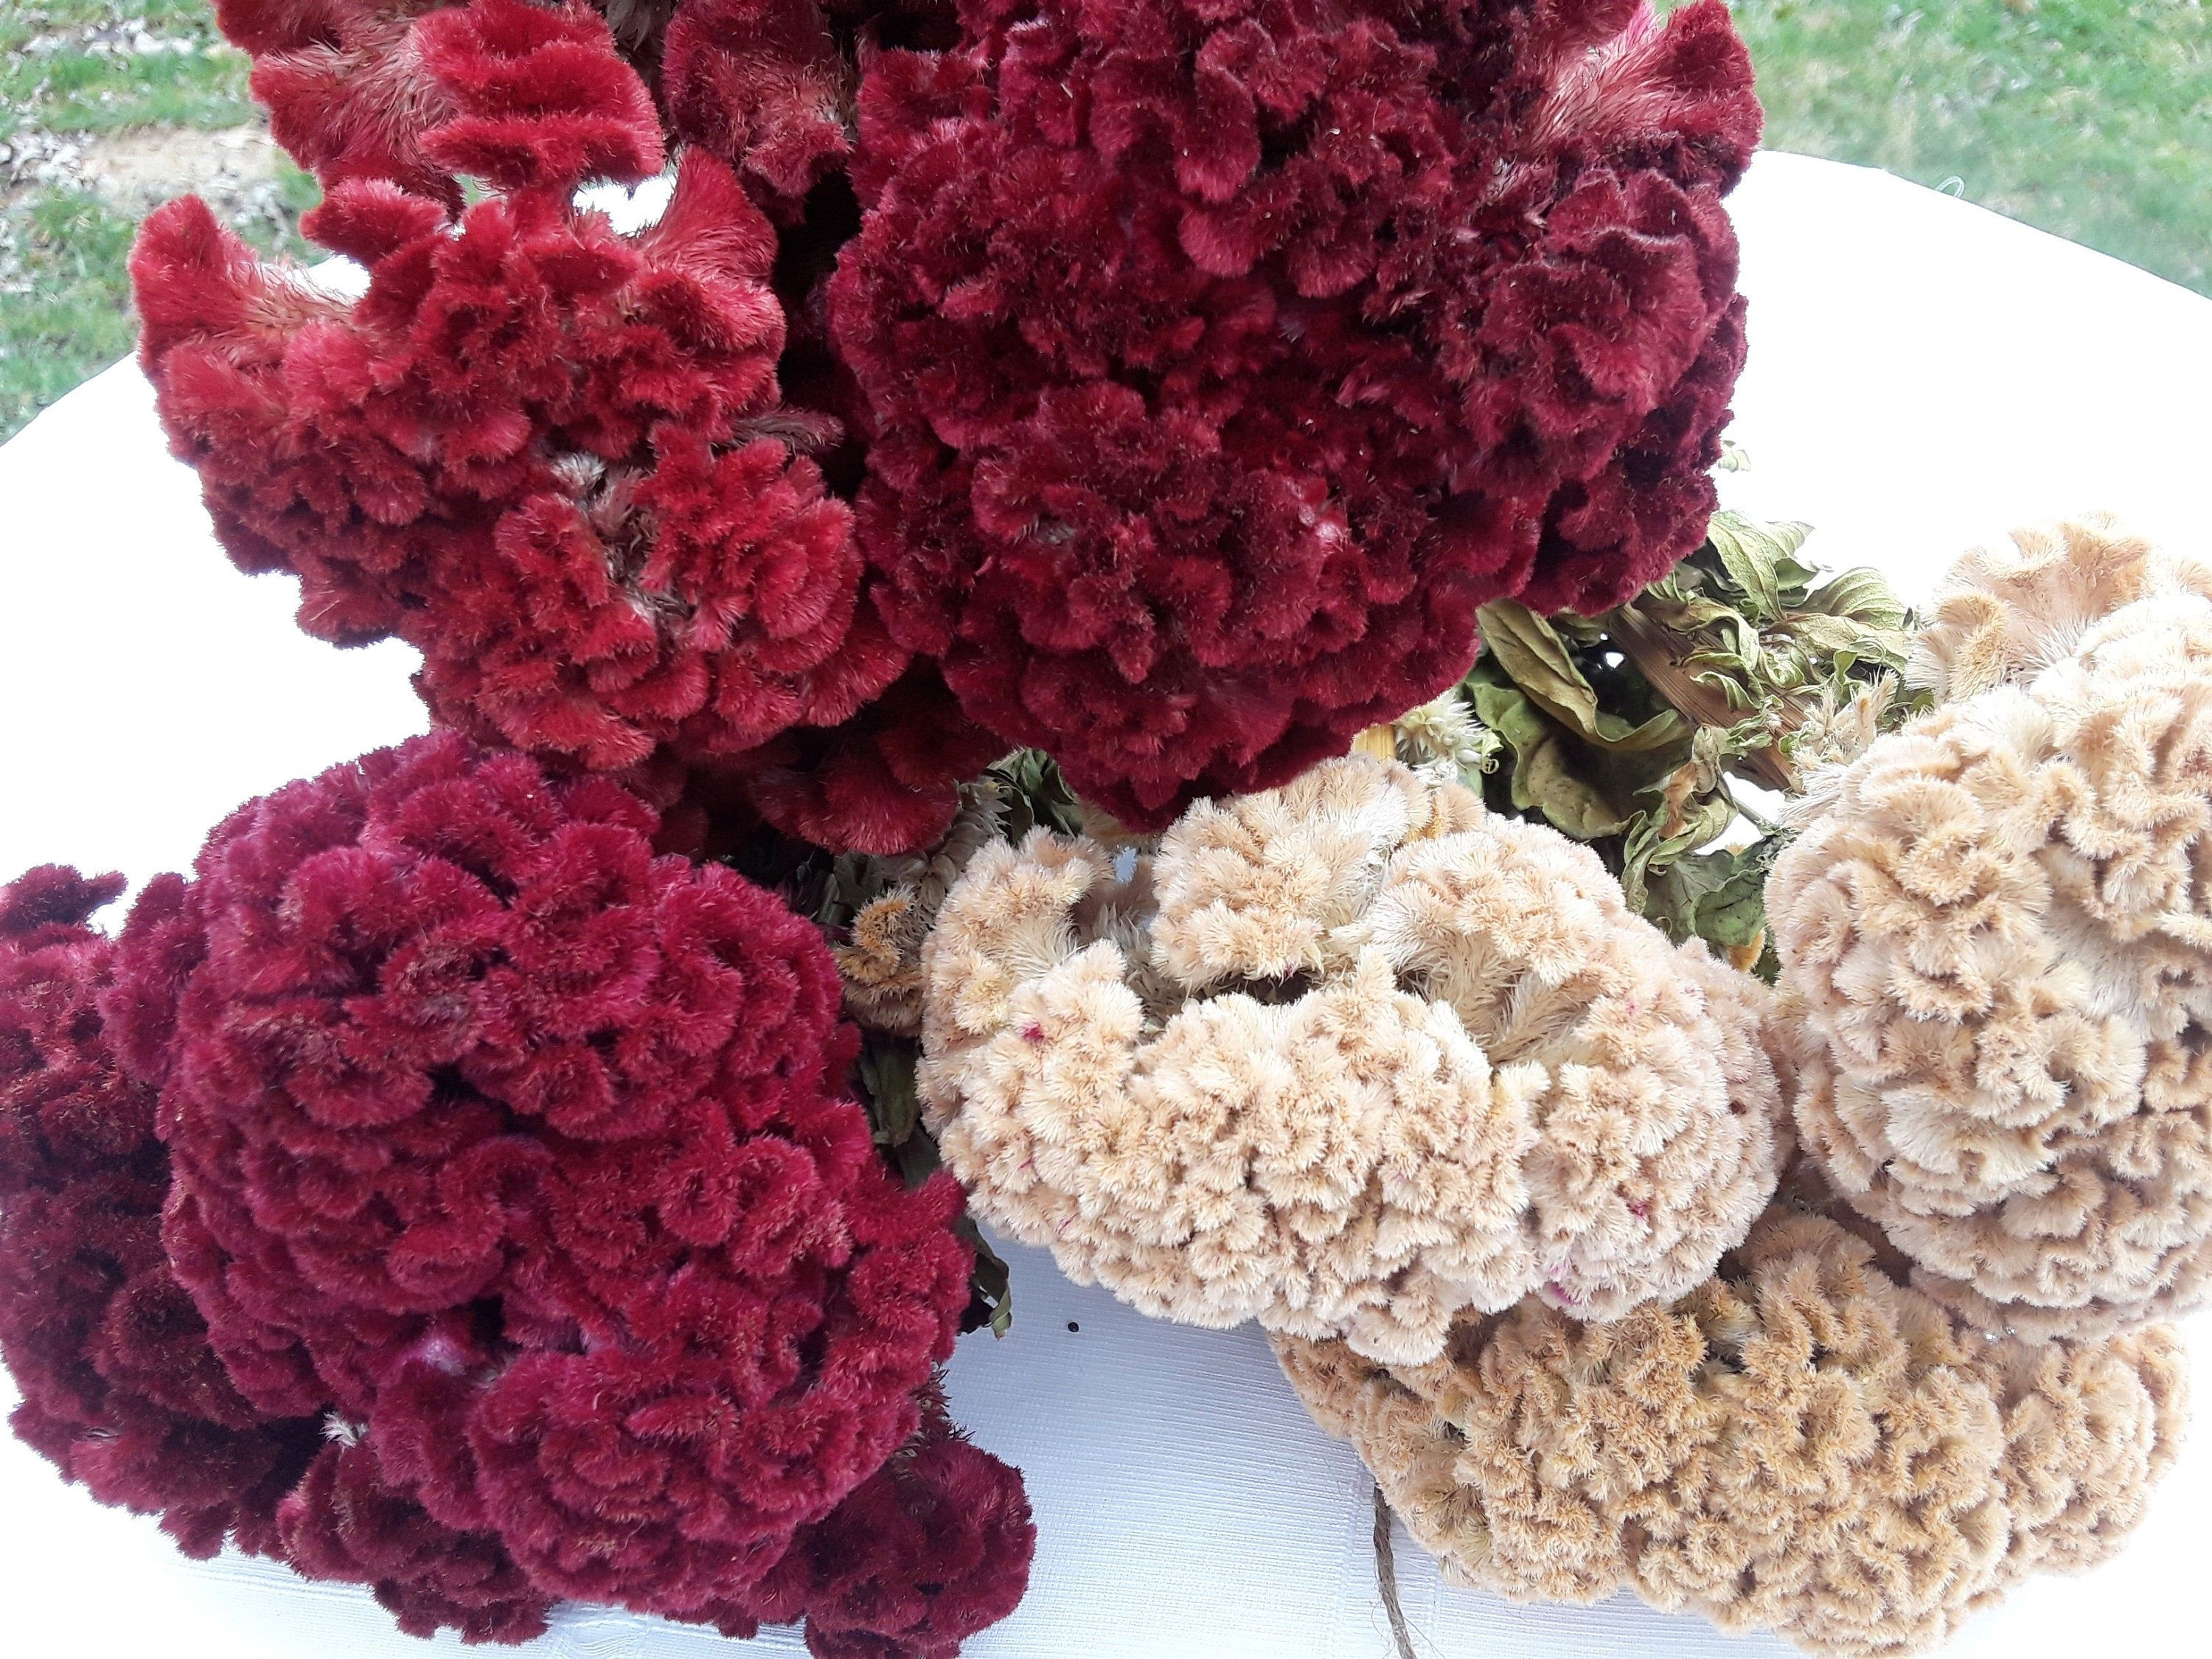 3 Dried Celosia Bouquets Https Etsy Me 3aqqyyn Red Yellow Driedcockscomb Driedcelosia Celosiabo In 2020 Dried Flower Bouquet Dried Flowers Dried Flowers Wedding